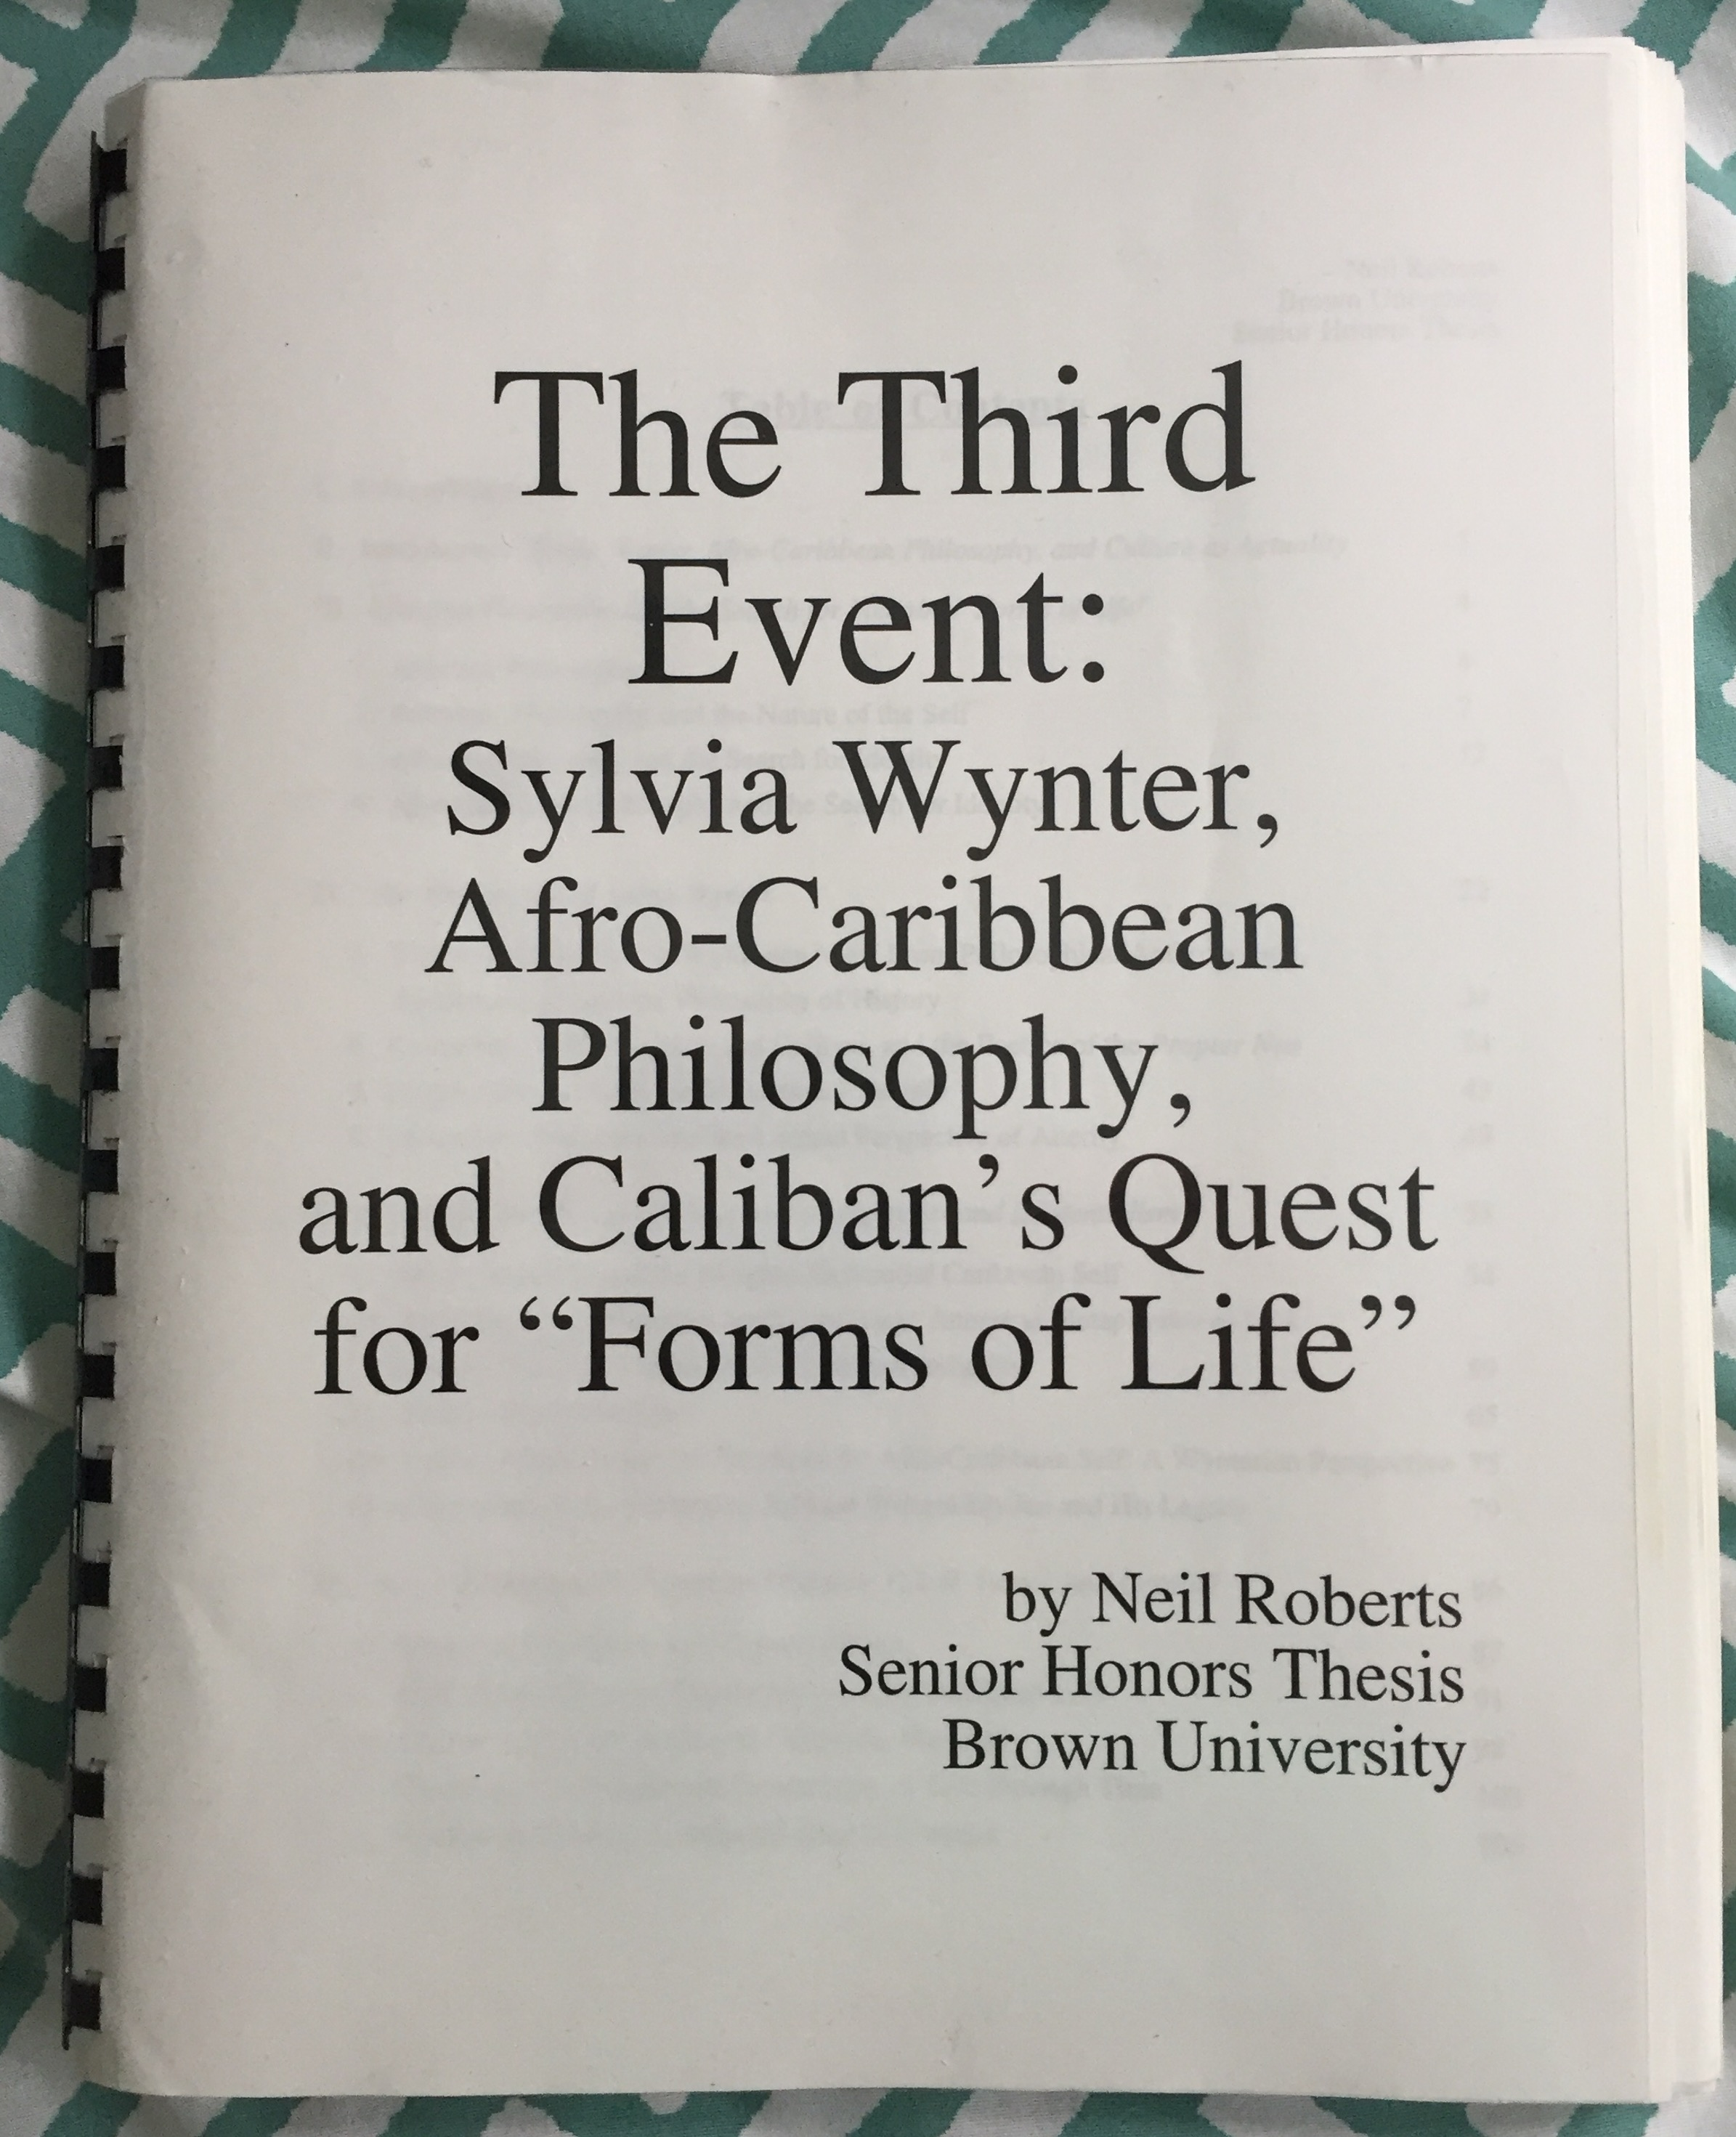 Cover page of Roberts's senior thesis.